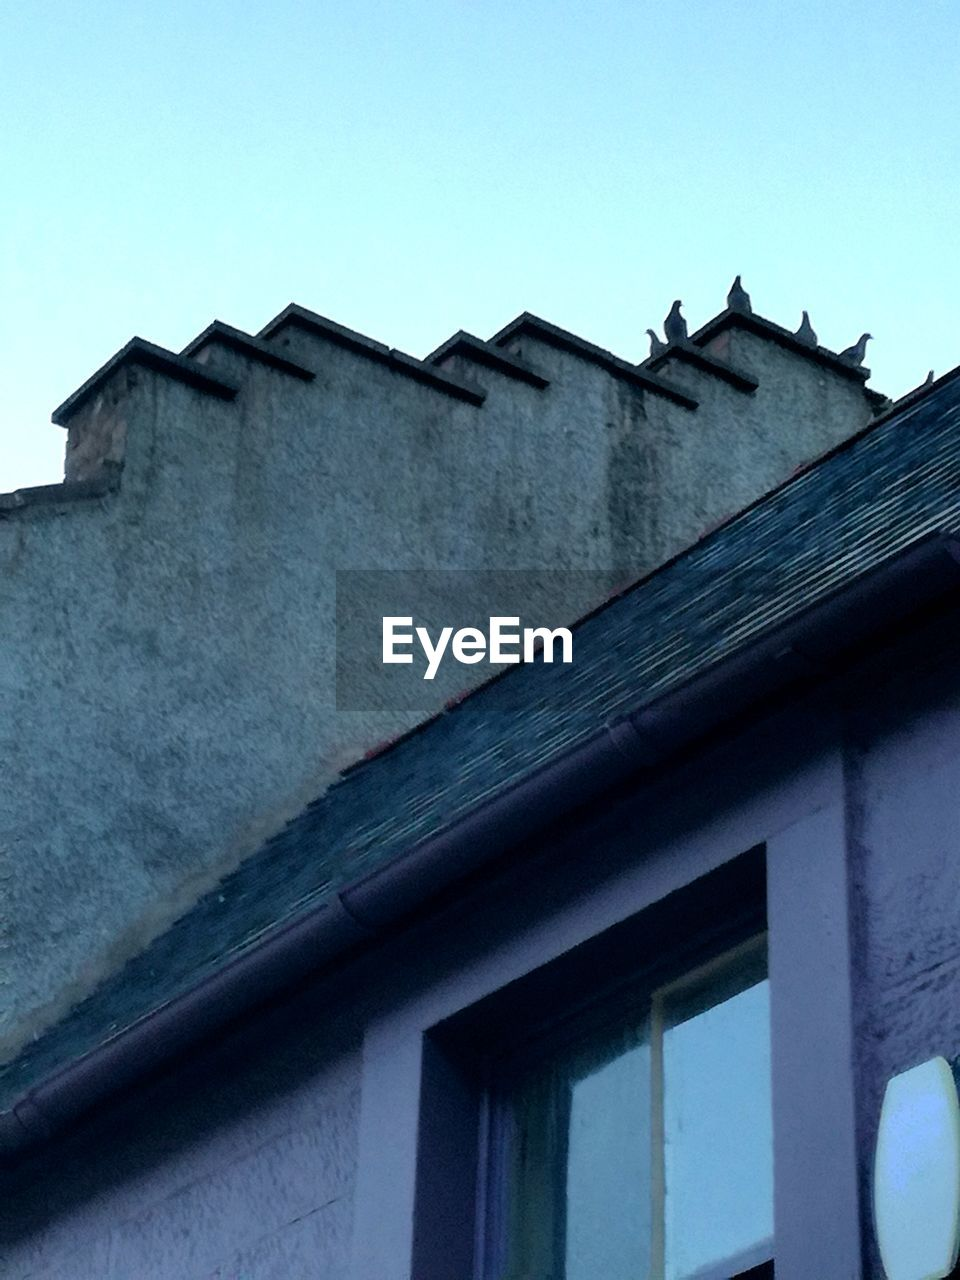 architecture, building exterior, built structure, sky, low angle view, building, window, house, no people, clear sky, day, roof, nature, residential district, outdoors, cold temperature, winter, blue, copy space, roof tile